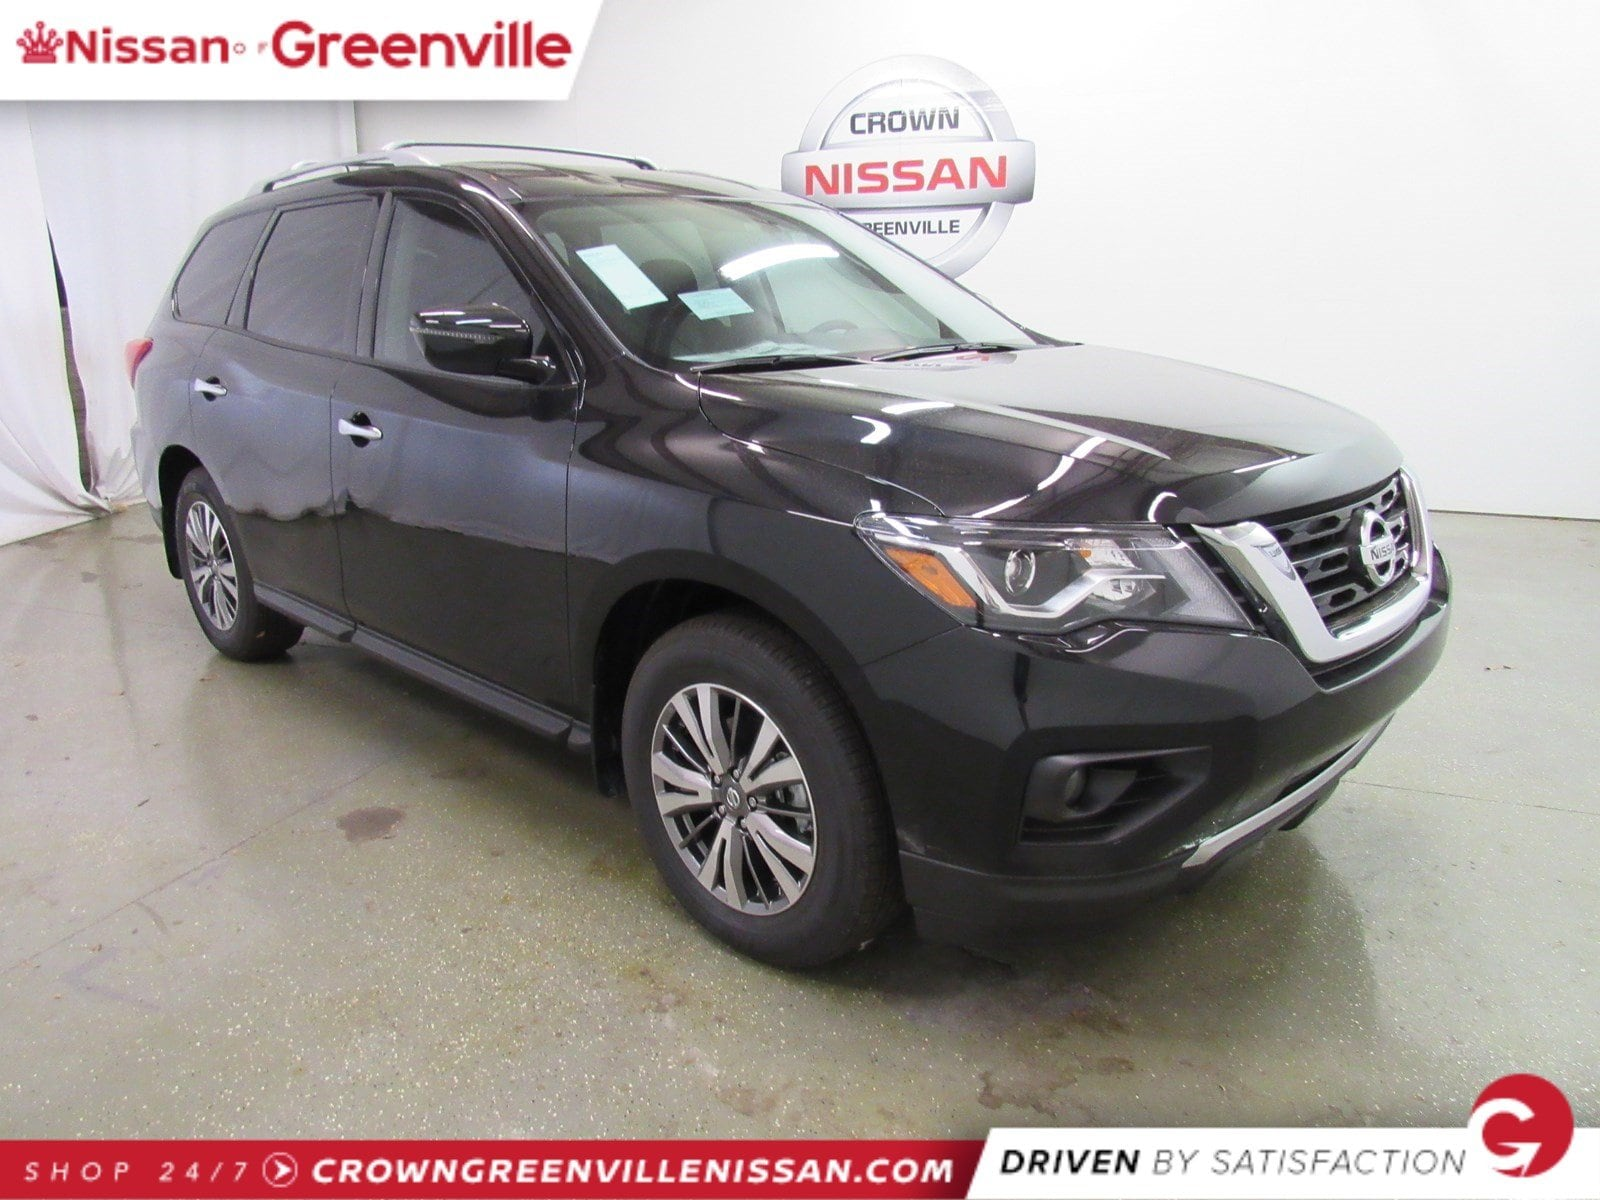 Cars for Sale by Greenville Beautiful Discount Nissan Cars Trucks for Sale Near Greenville Sc Nc